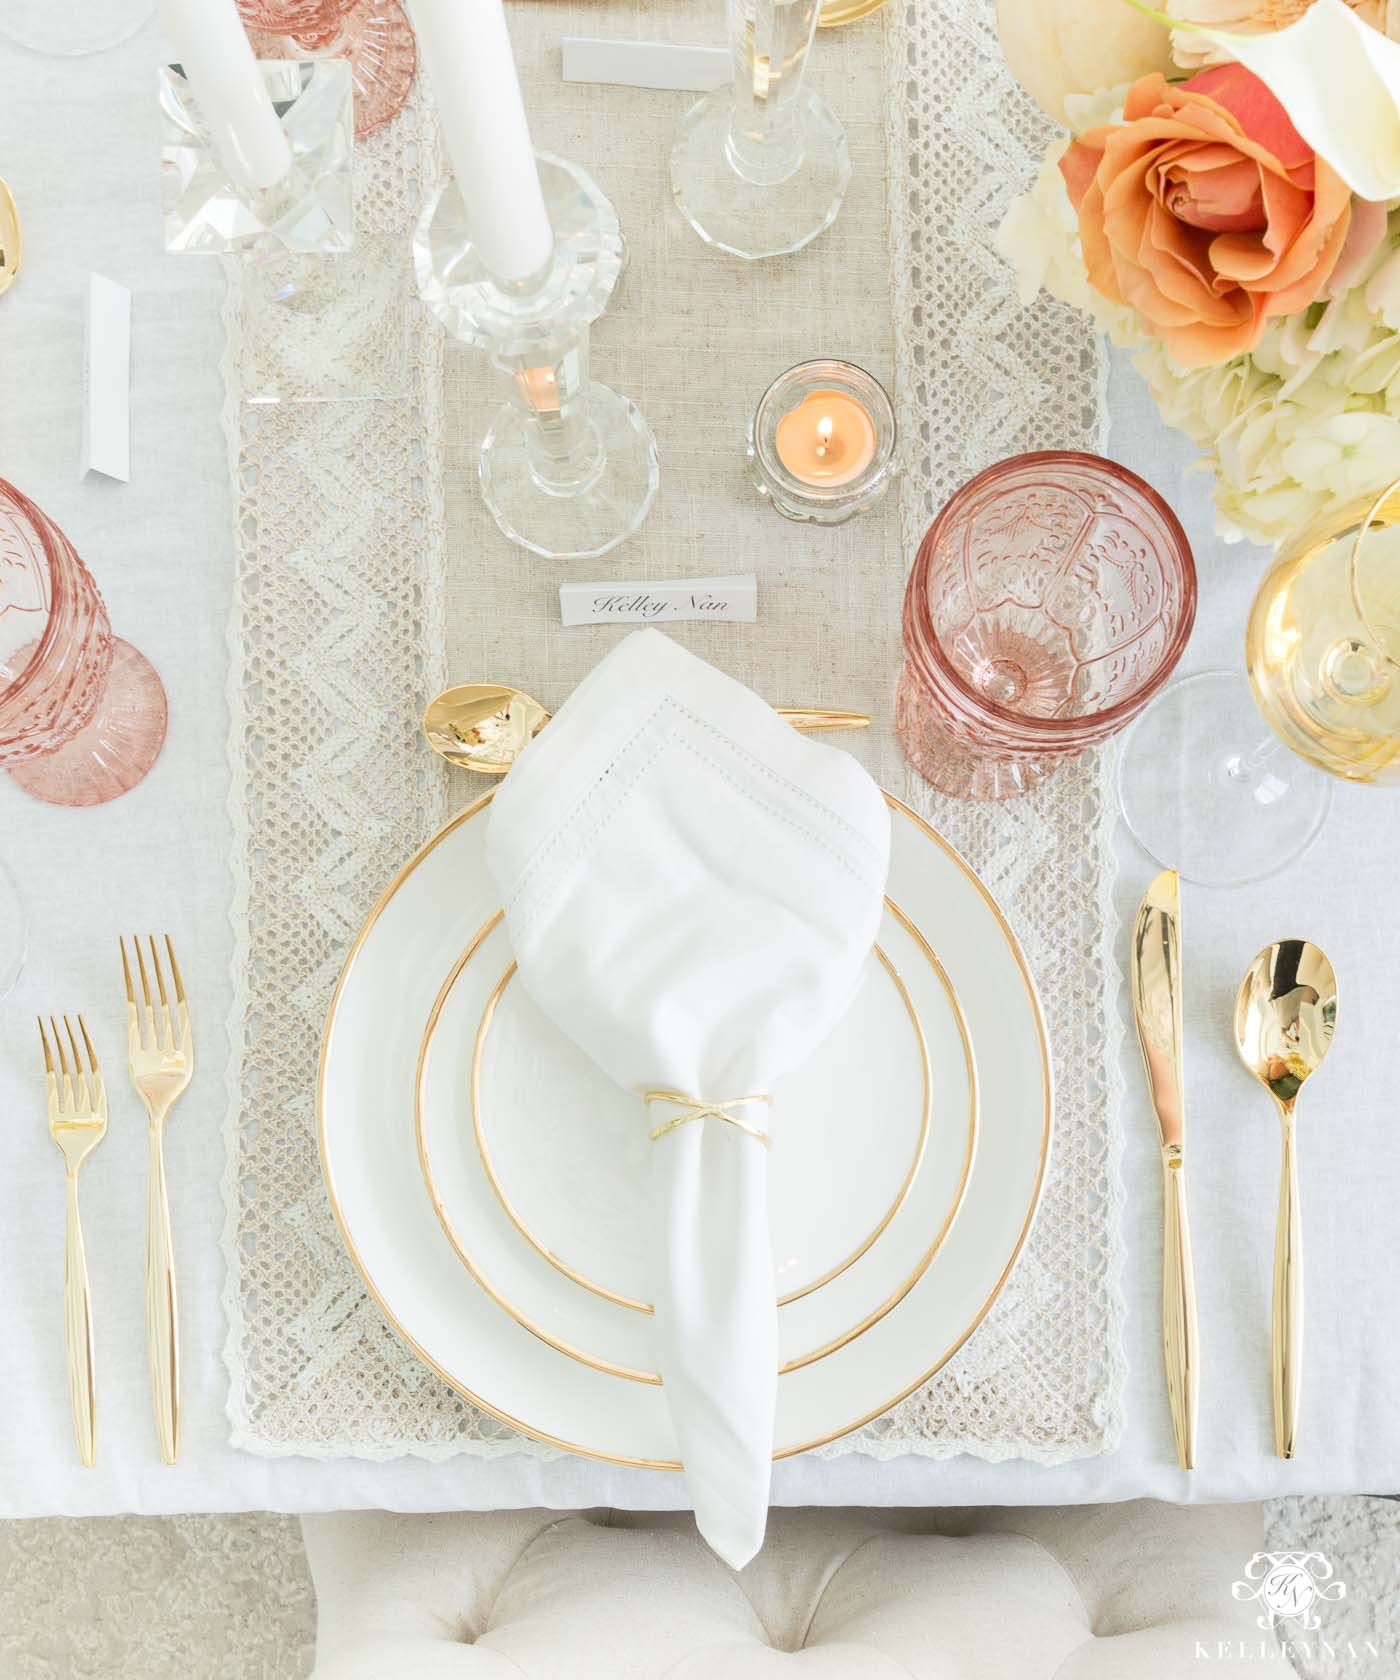 Thanksgiving Dinner Place Setting and Table Decorations